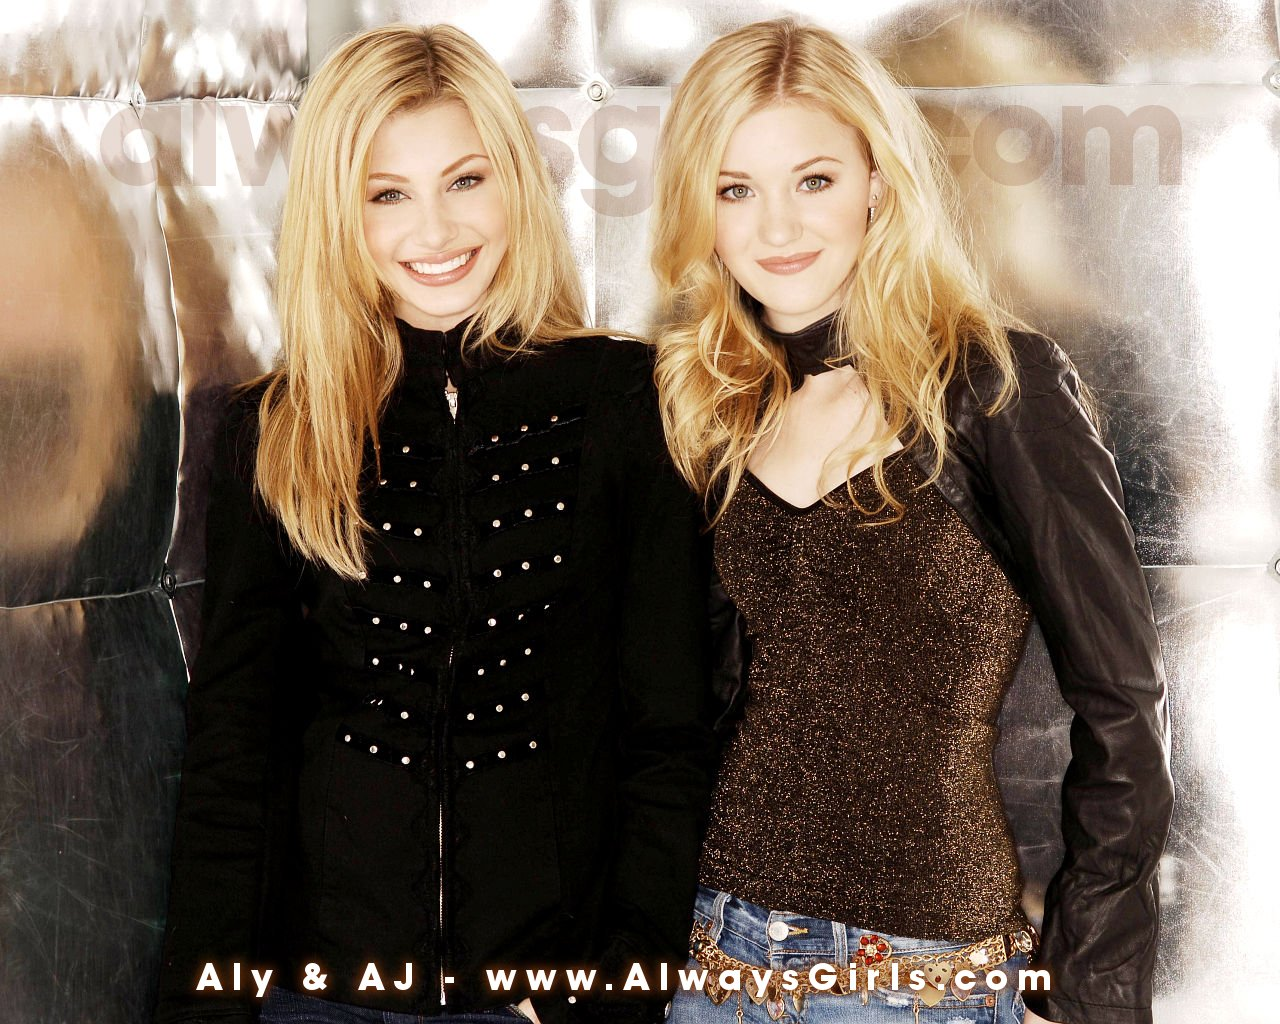 aly and aj - photo #34